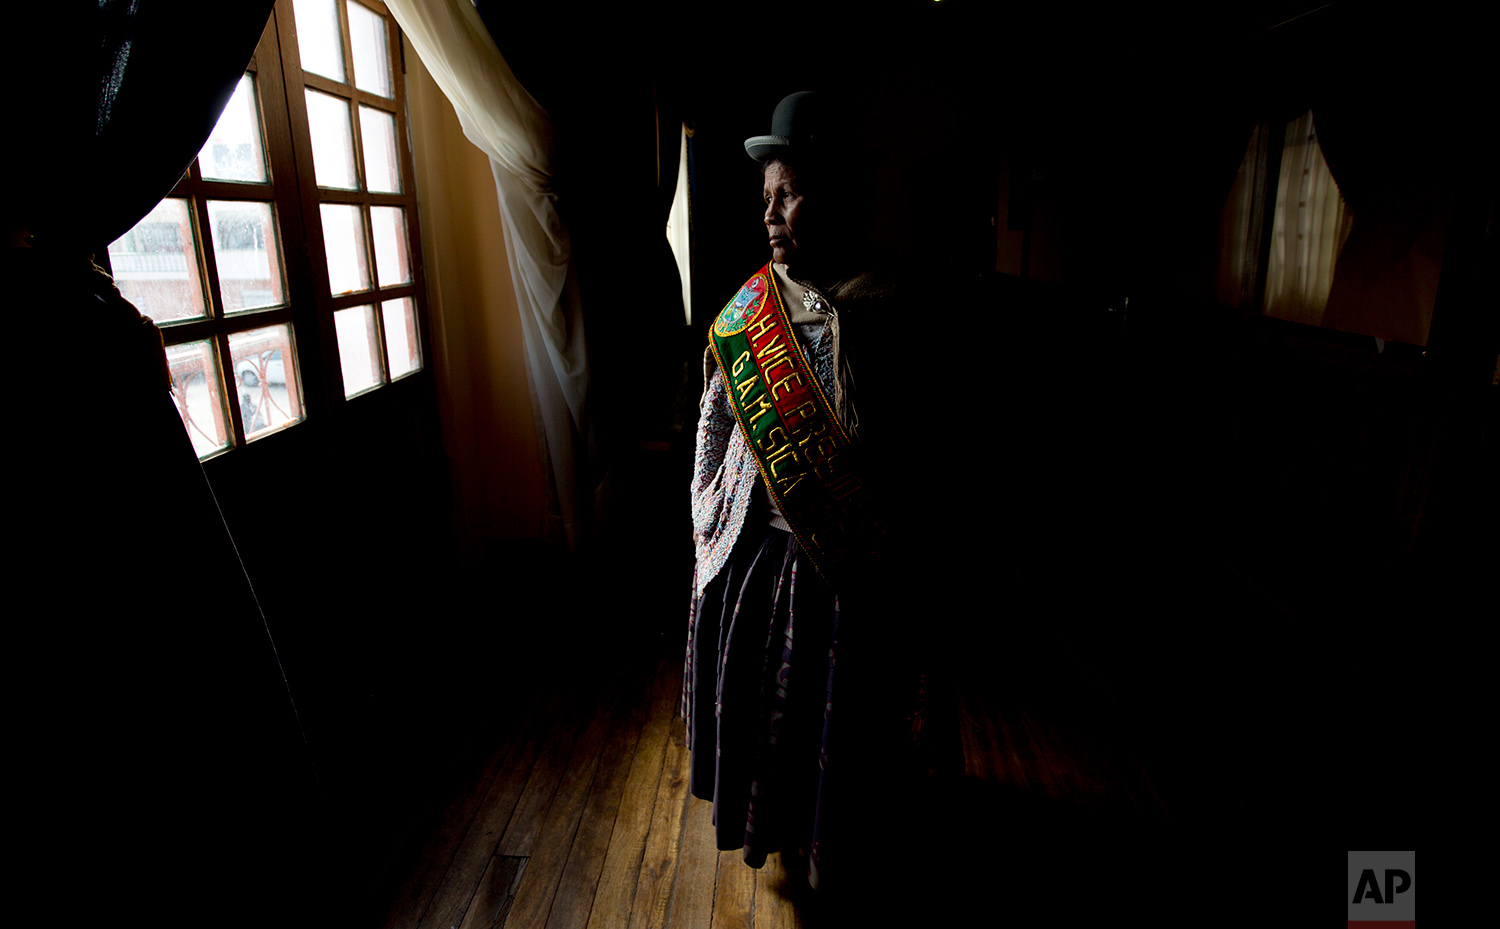 In this July 18, 2018 photo, Sica Sica Councilwoman Damiana Condori, who said she gave up her position due to harassment from the male alternate, poses for a photo in Sica Sica, Bolivia. (AP Photo/Juan Karita)